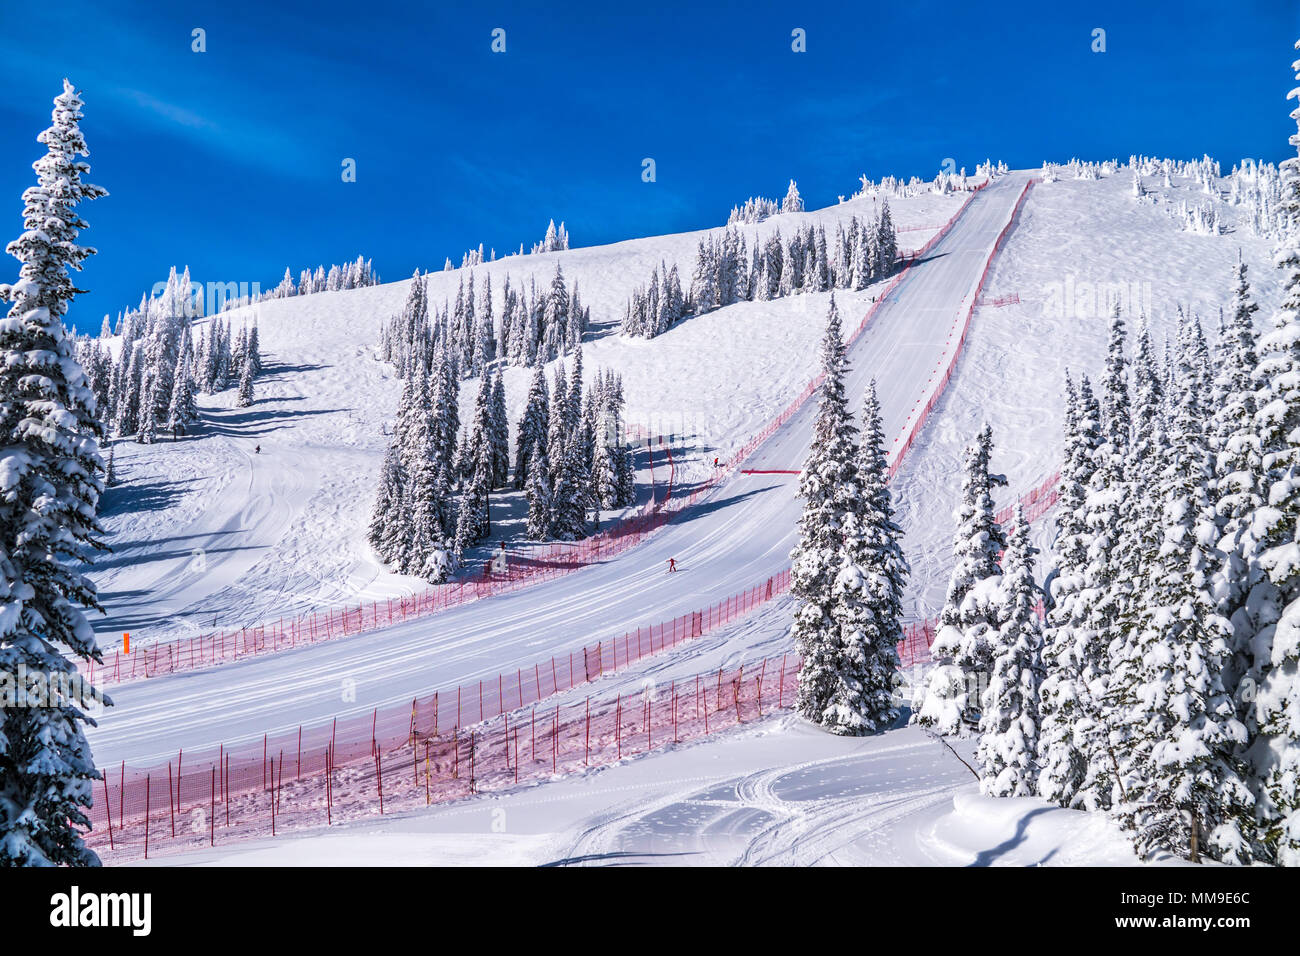 Velocity Challenge and FIS speed ski world cup race at the famous Sun Peaks Ski Resort in the Shuswap Highlands of beautiful British Columbia - Stock Image